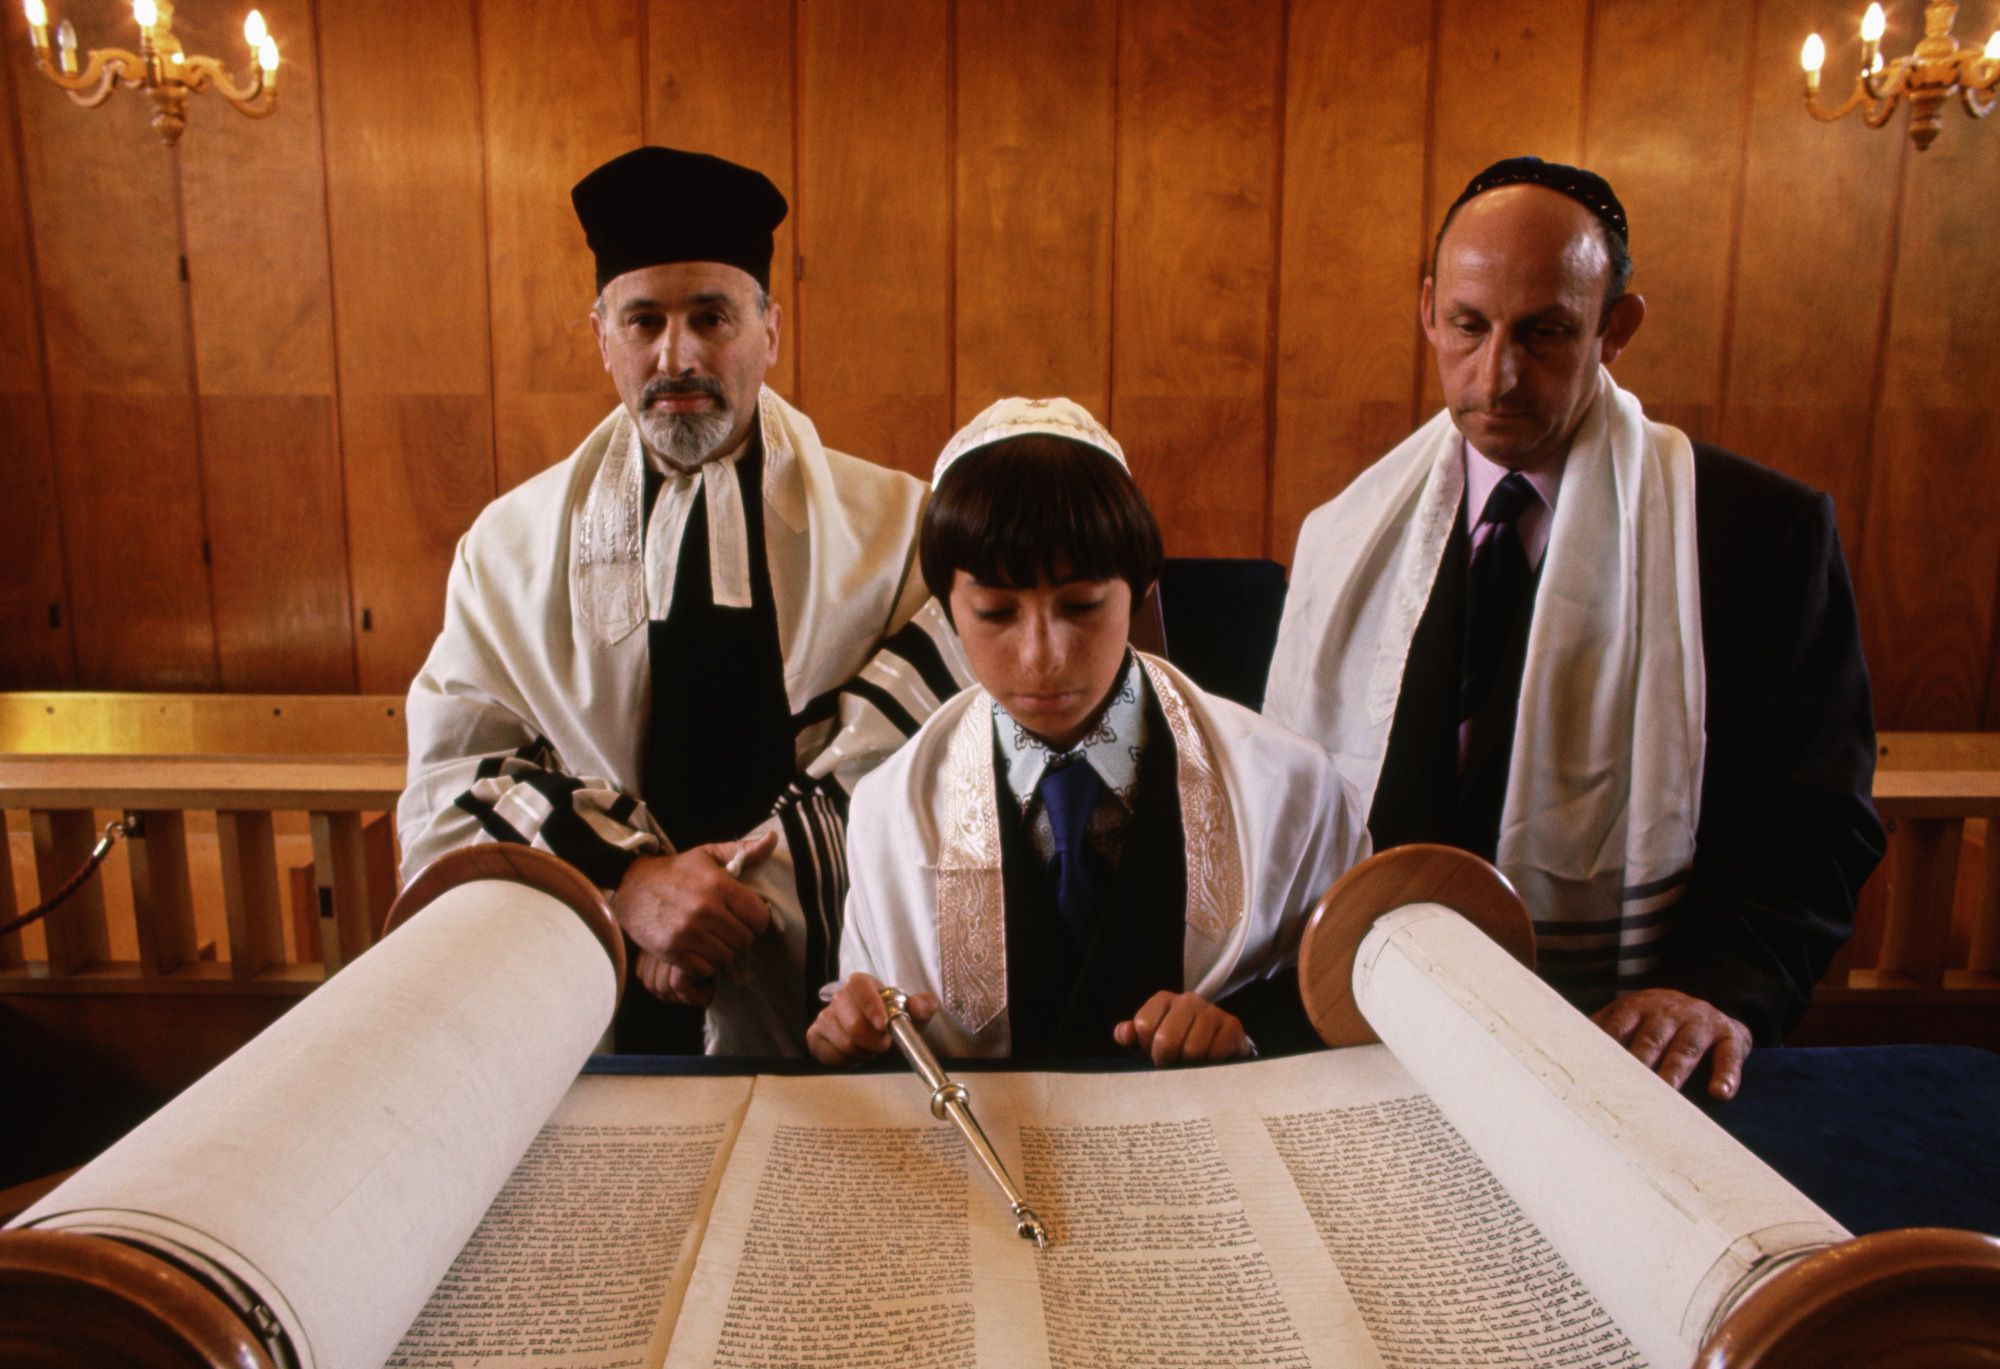 What Does Bar Mitzvah Mean?